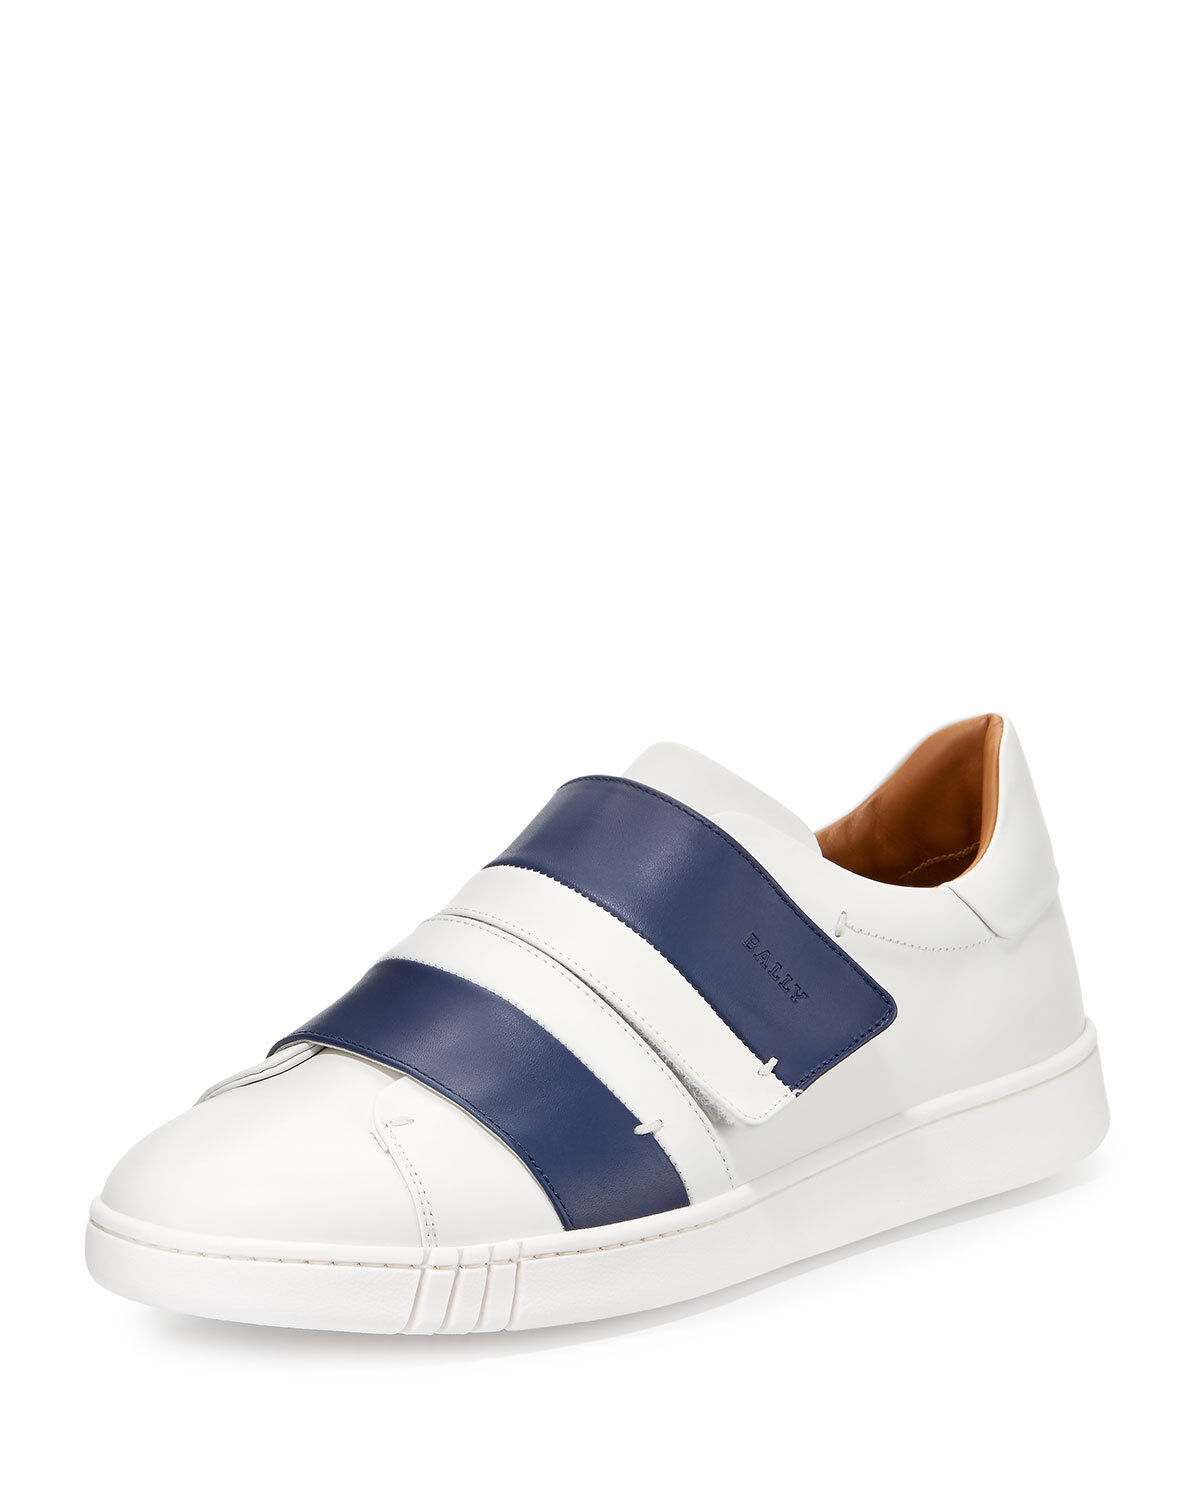 NIB BALLY WILLET WHITE blueE LEATHER LOGO SWISS SNEAKERS 12.5 US 45.5 ITALY